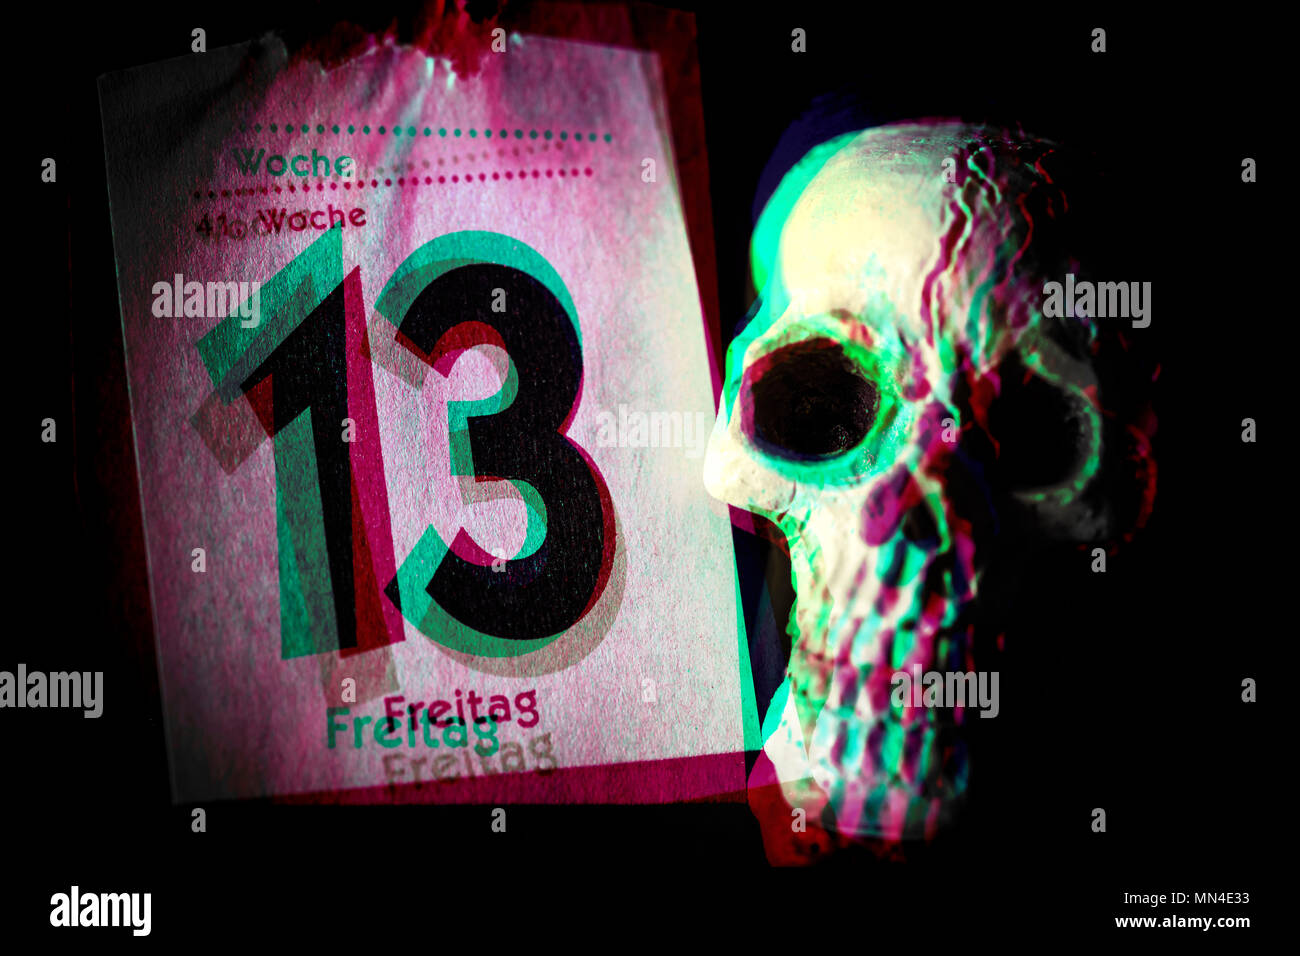 Calendar Sheet Friday the 13th and skull, Kalenderblatt Freitag der 13. und Totenkopf - Stock Image